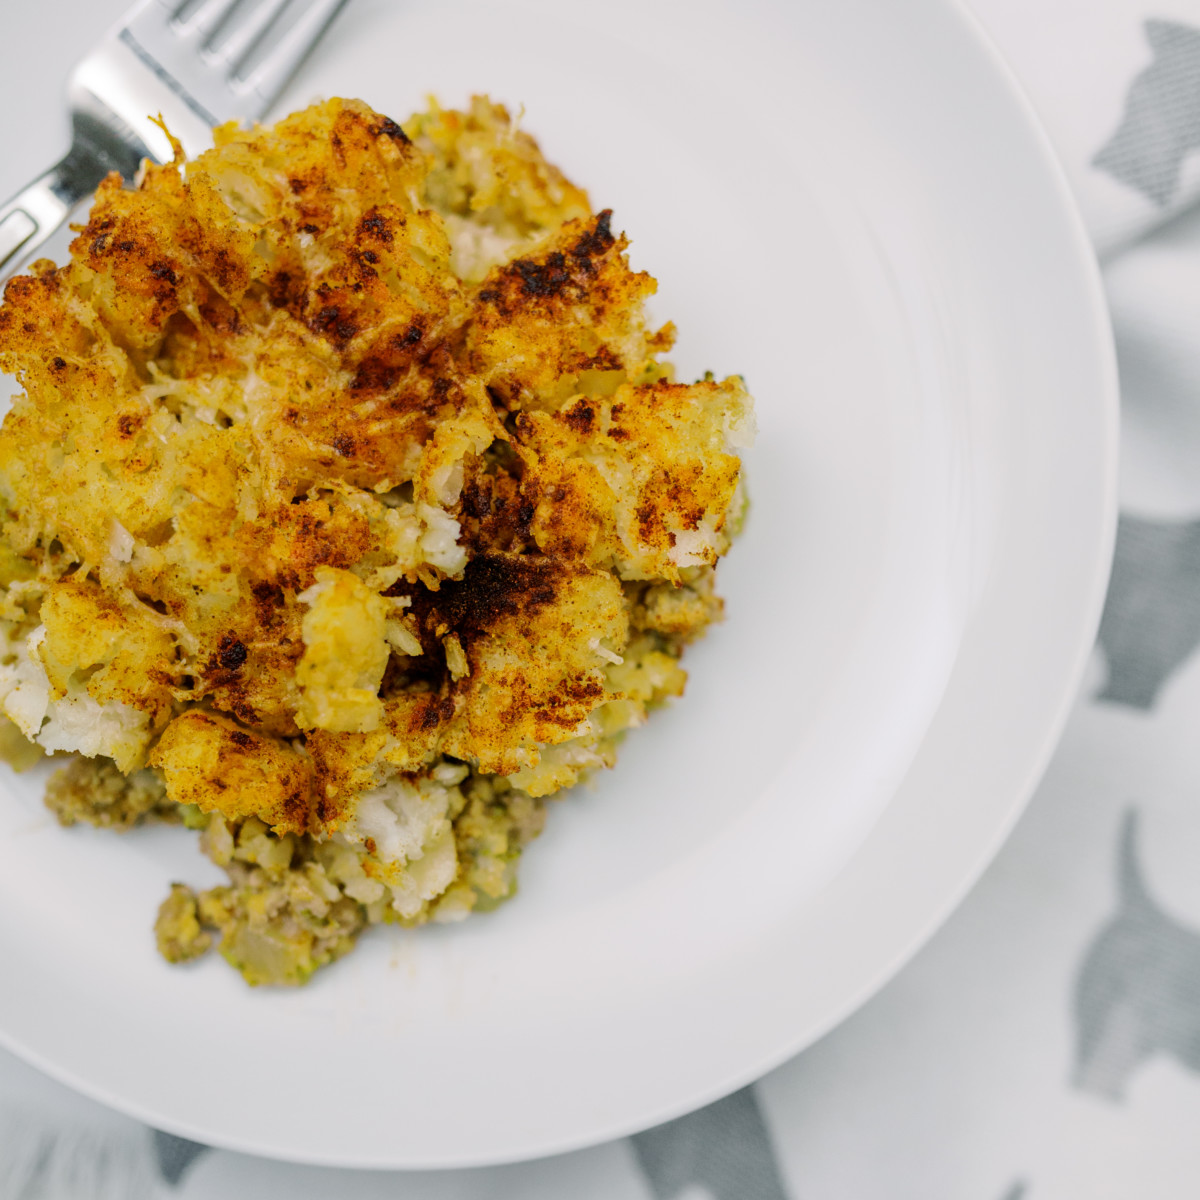 Turkey Tater Tot Casserole on plate